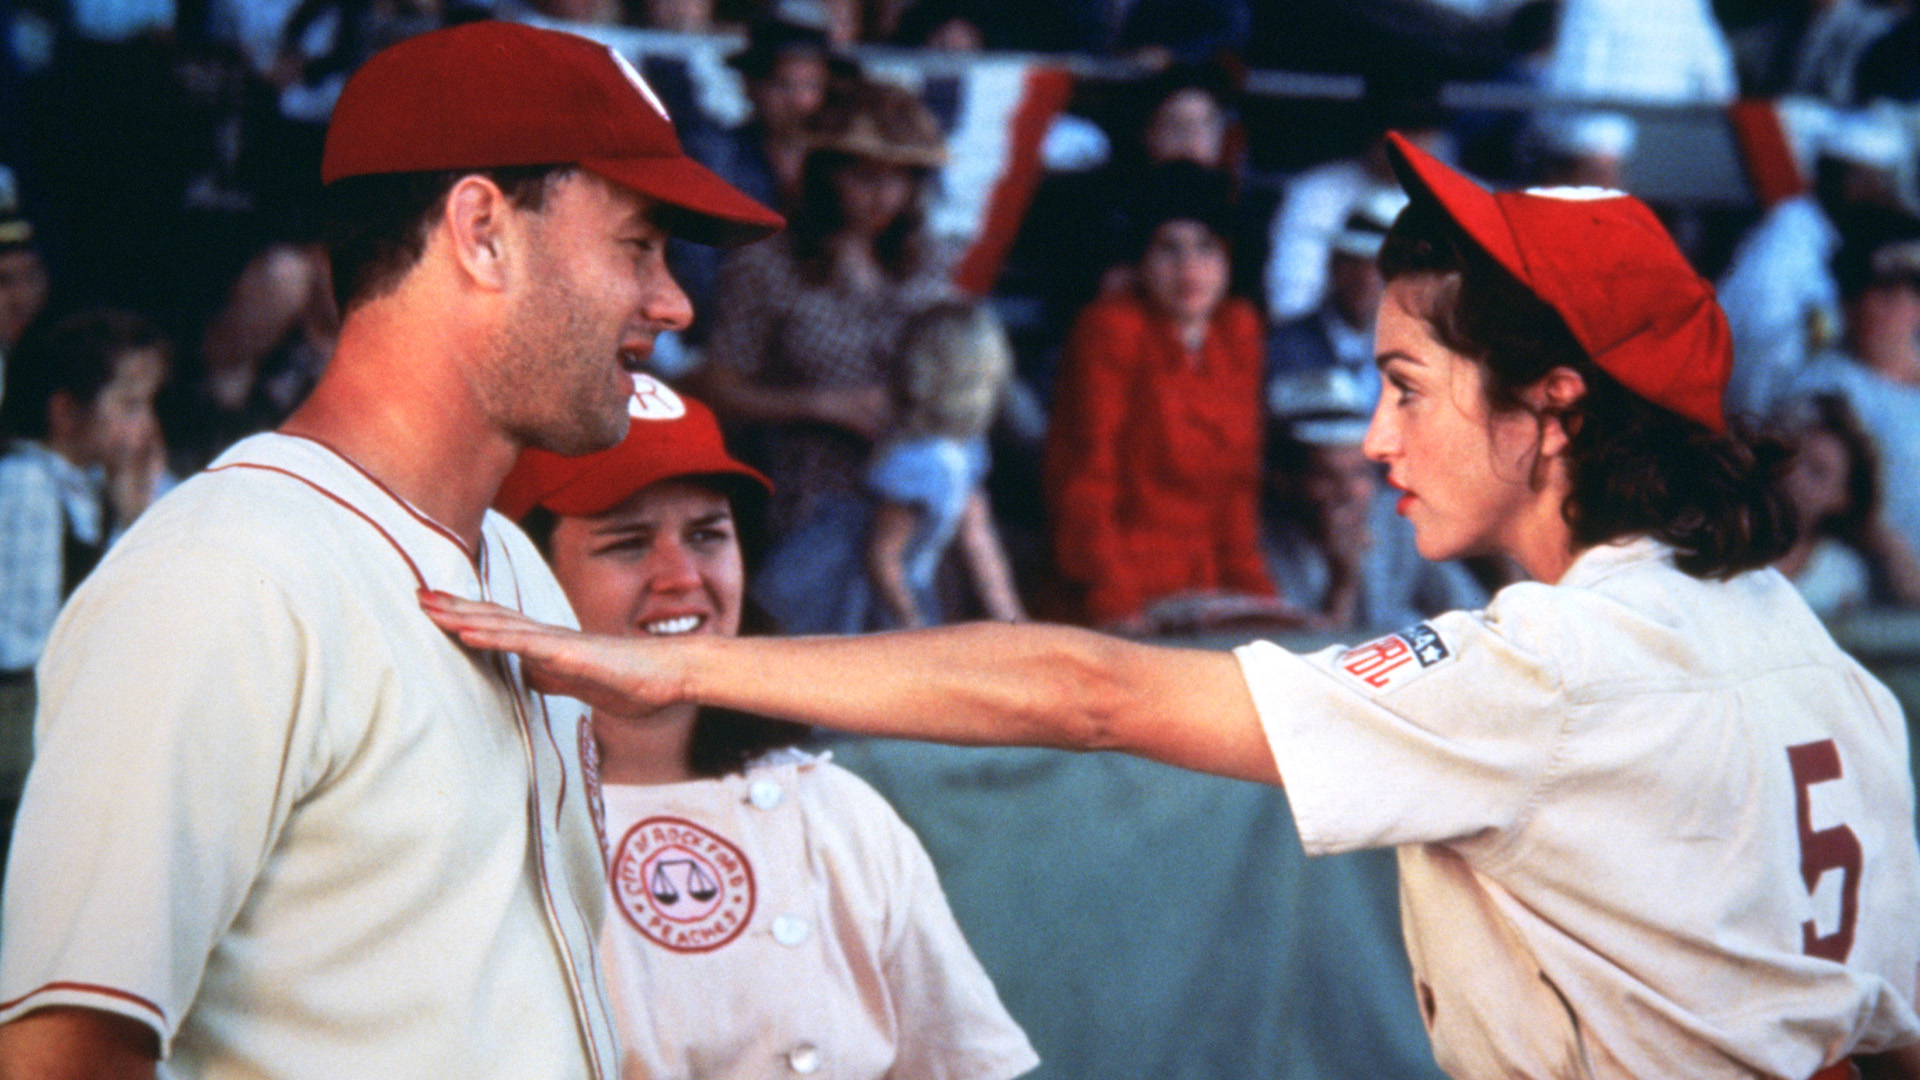 Tom Hanks, Rosie O'Donnell and Madonna in A League of Their Own